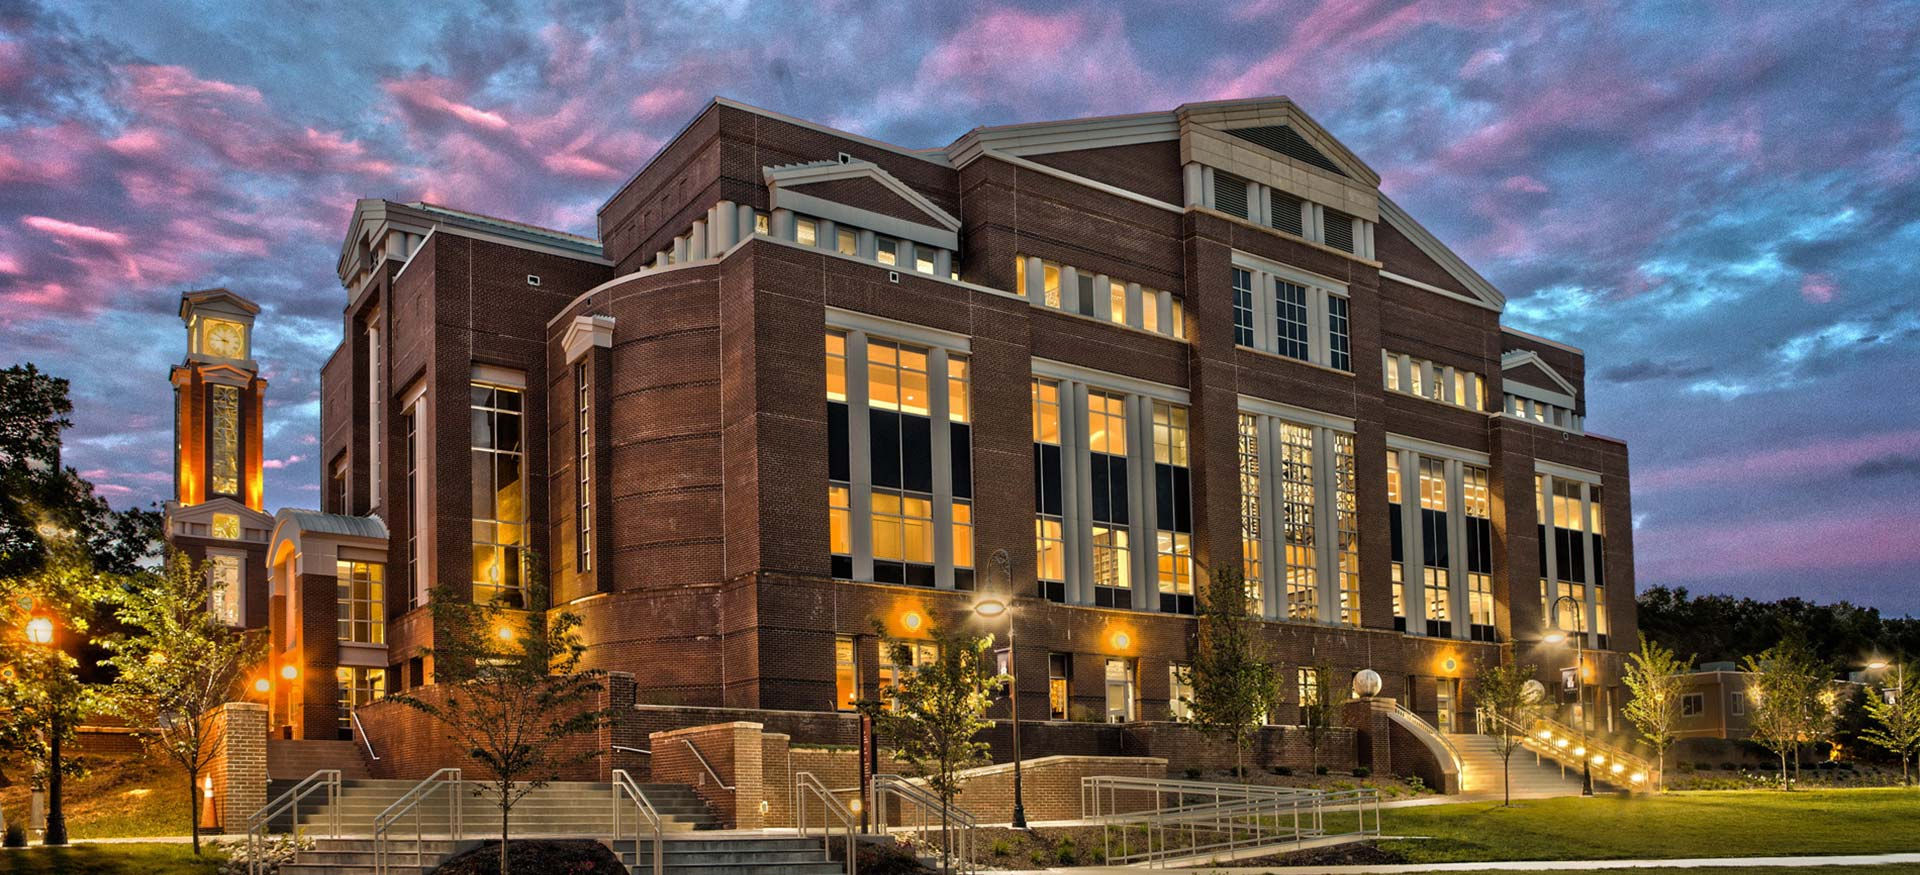 Photo of the J Eugene Smith Library and clock tower at dusk